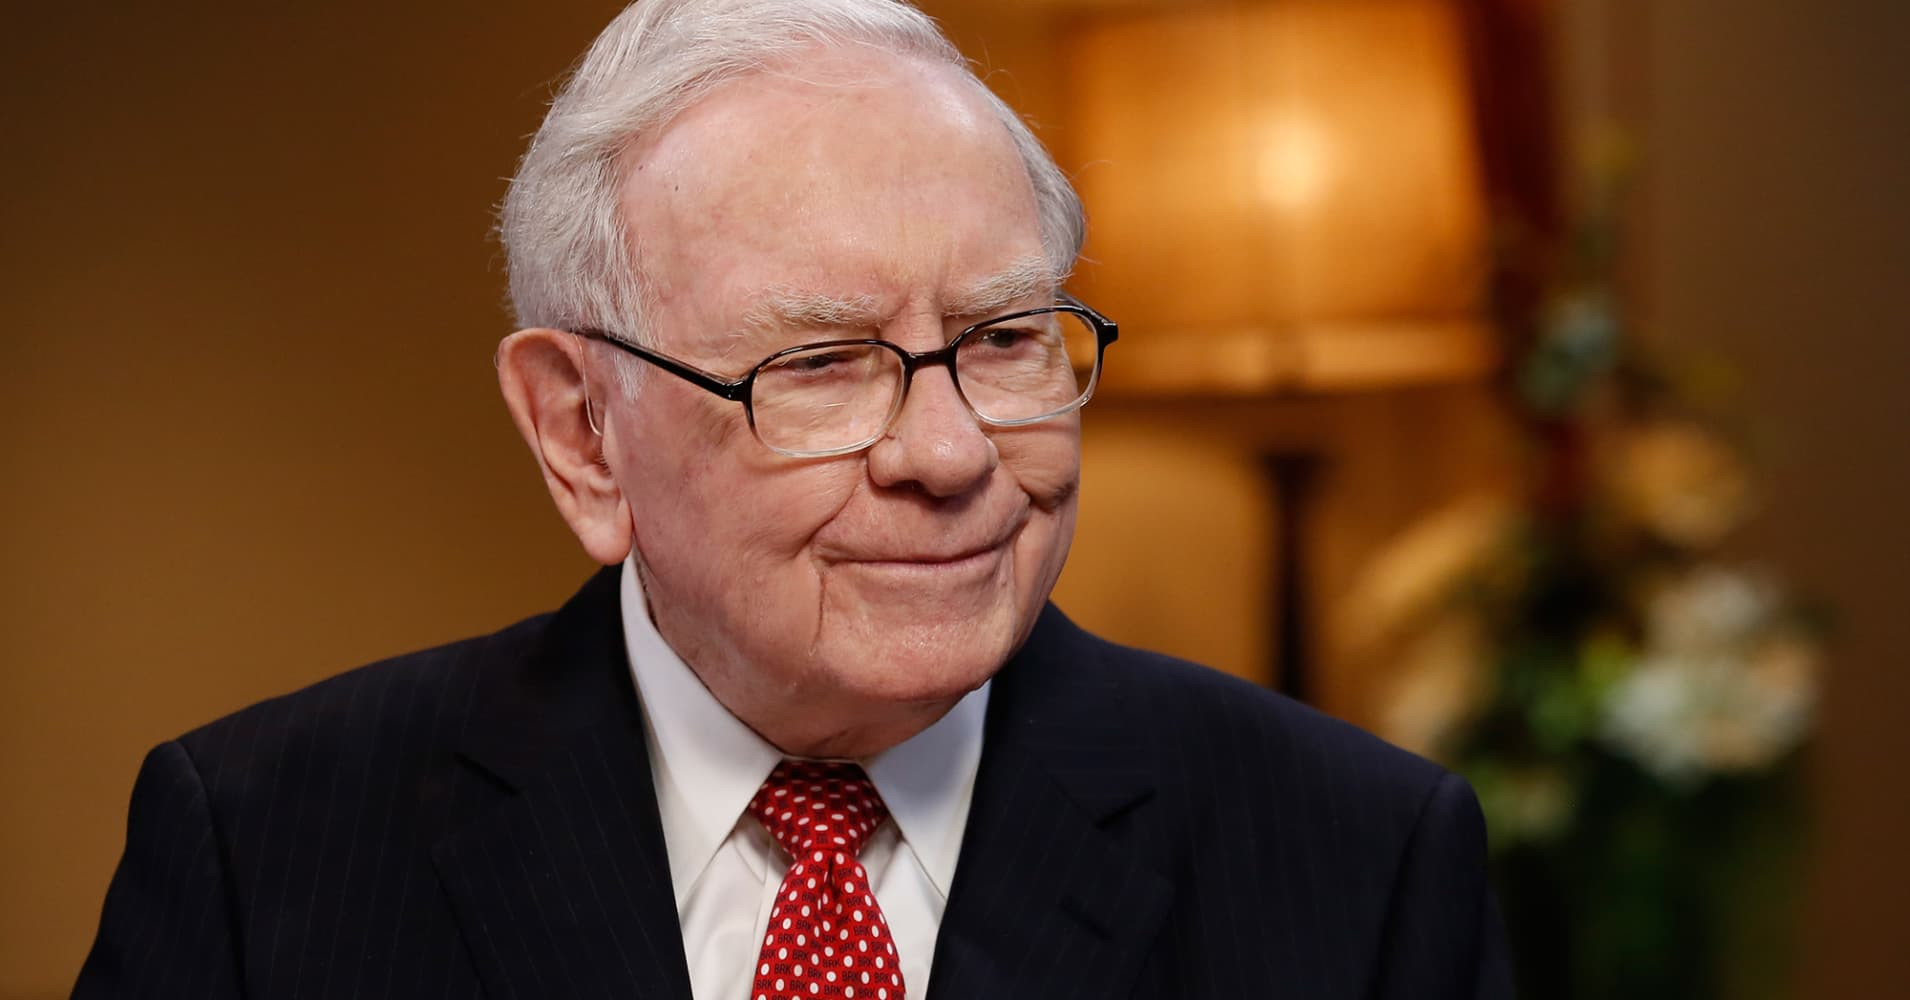 Warren Buffett A Big Loser In Apple Inc. Fiasco